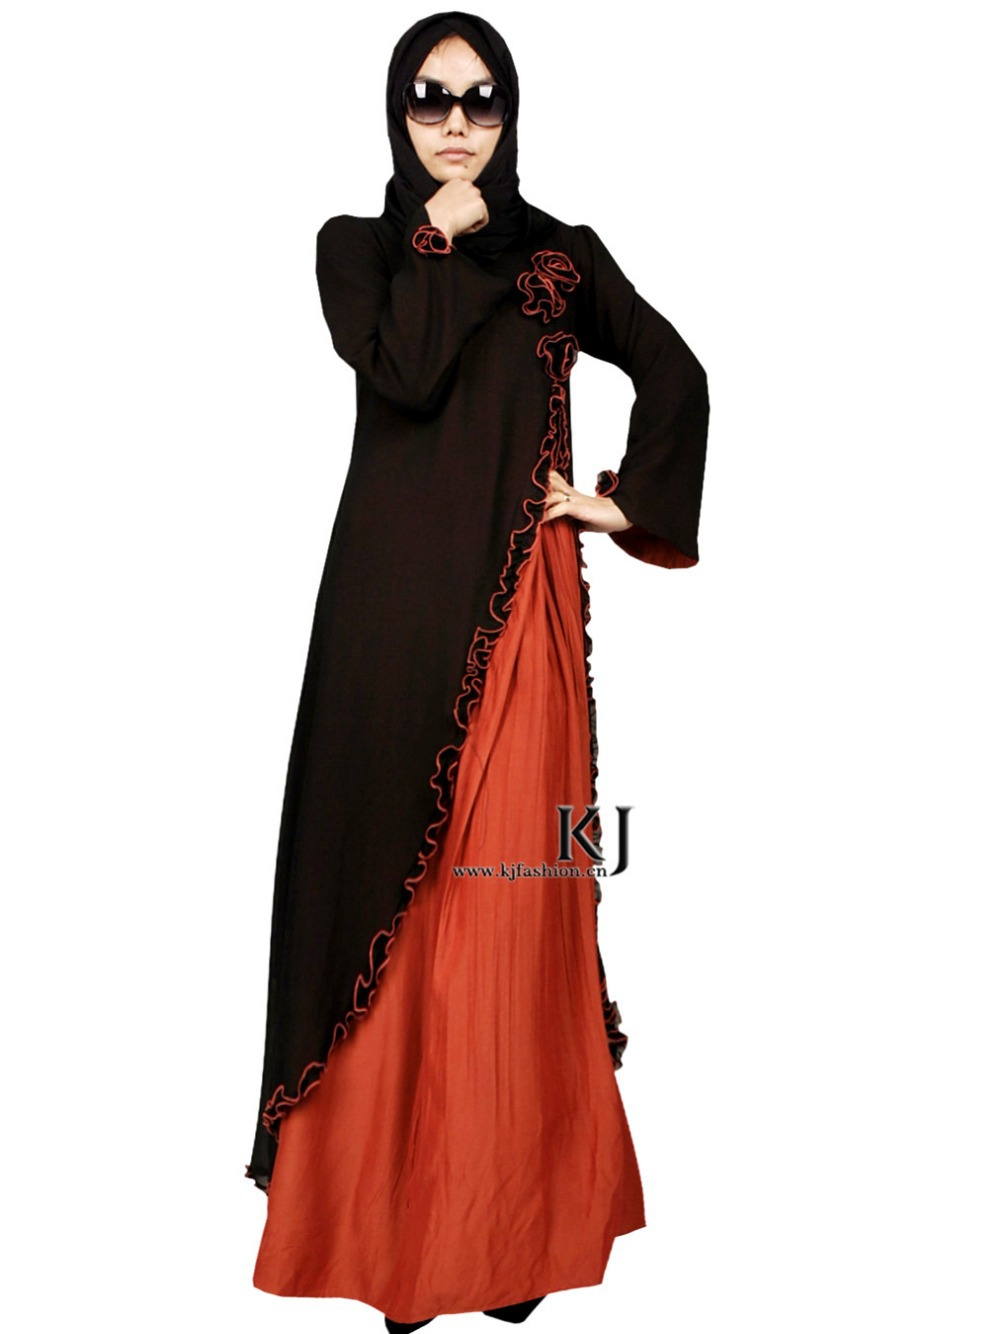 Pakistan Fashion Dresses Promotion Shop For Promotional Pakistan Fashion Dresses On